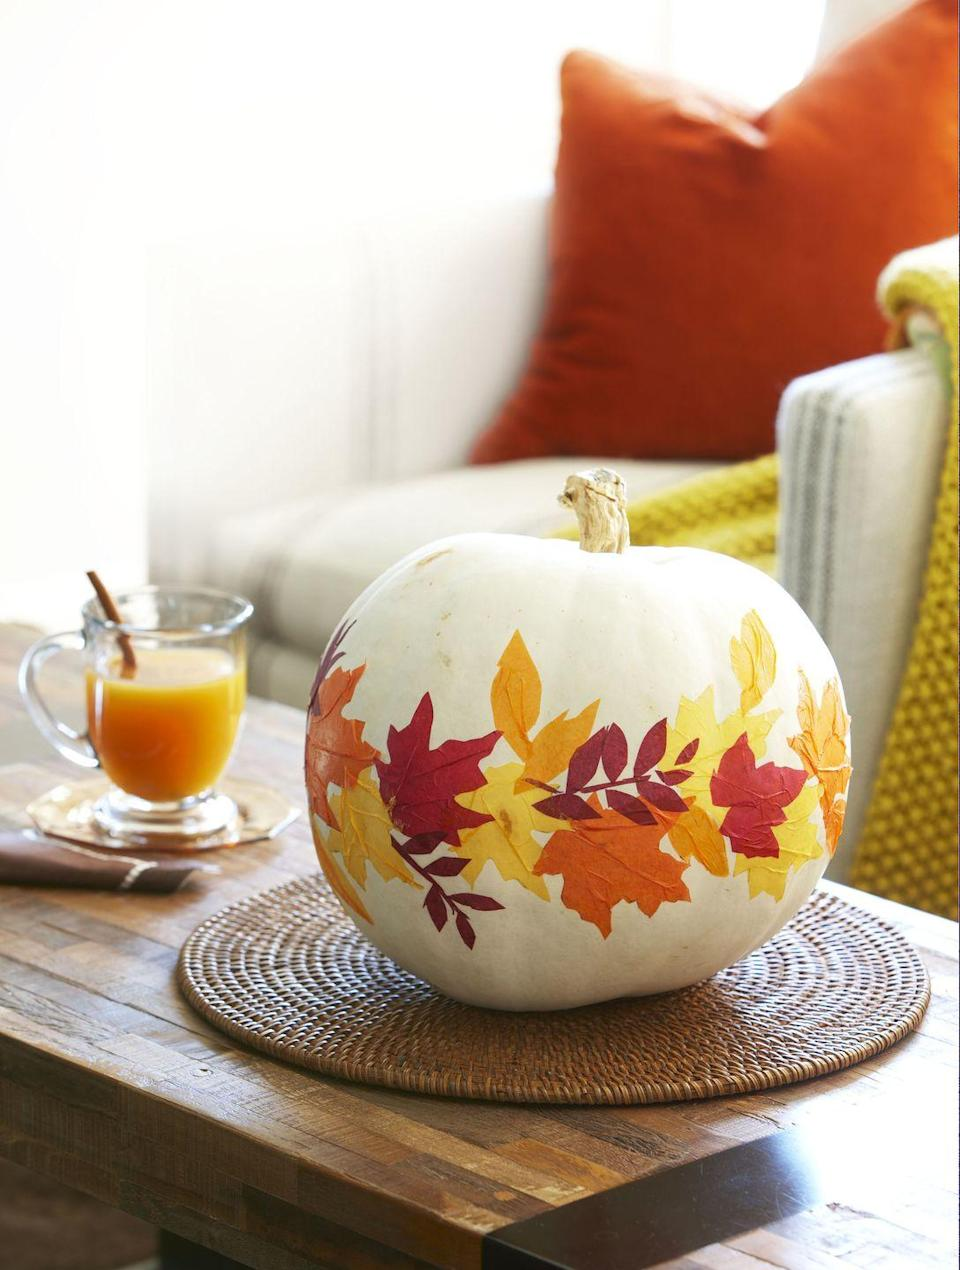 "<p>Skip carving and decoupage a white pumpkin with fall foliage. The key to realistic paper cut-outs? Tracing the real-deal straight from the backyard. </p><p><a class=""link rapid-noclick-resp"" href=""https://www.amazon.com/dp/B003JO1E4A/?tag=syn-yahoo-20&ascsubtag=%5Bartid%7C10055.g.1566%5Bsrc%7Cyahoo-us"" rel=""nofollow noopener"" target=""_blank"" data-ylk=""slk:SHOP TISSUE PAPER"">SHOP TISSUE PAPER</a></p><p><em><a href=""https://www.goodhousekeeping.com/holidays/halloween-ideas/g1714/no-carve-pumpkin-decorating/?slide=11"" rel=""nofollow noopener"" target=""_blank"" data-ylk=""slk:Get the tutorial »"" class=""link rapid-noclick-resp"">Get the tutorial »</a></em><br></p>"